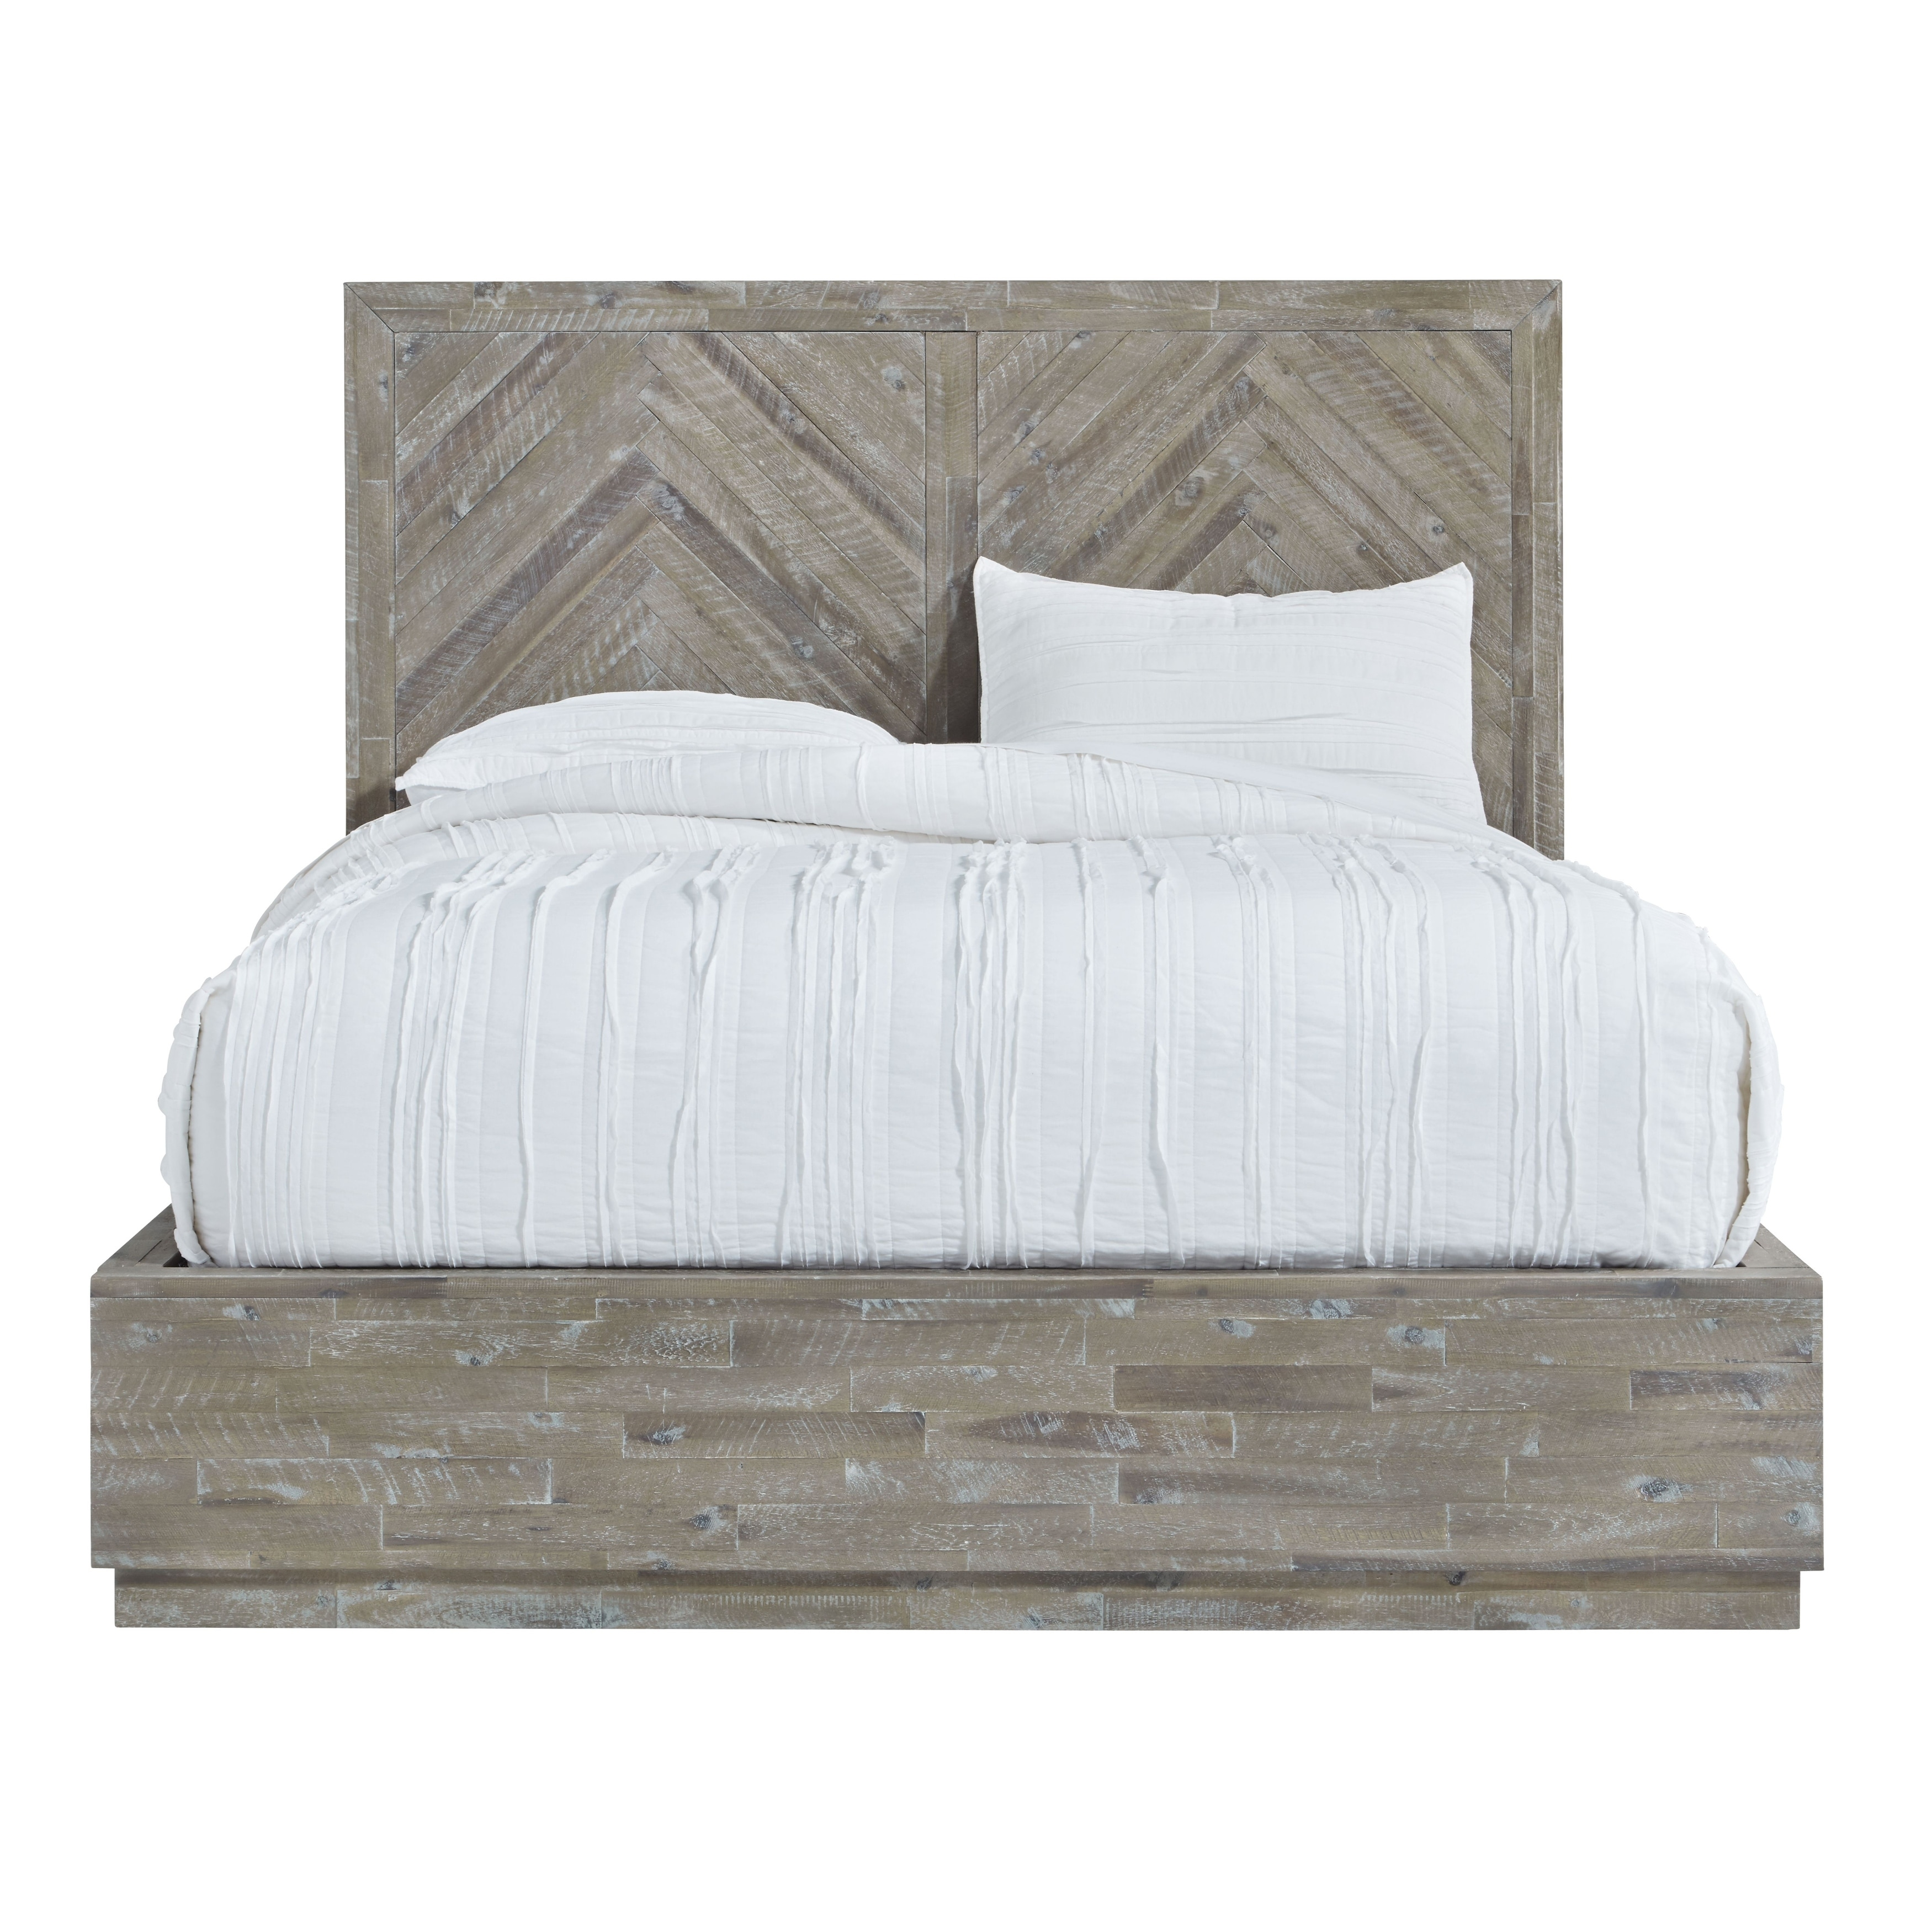 Shop The Gray Barn Morning Star Queen Size Solid Wood Platform Bed